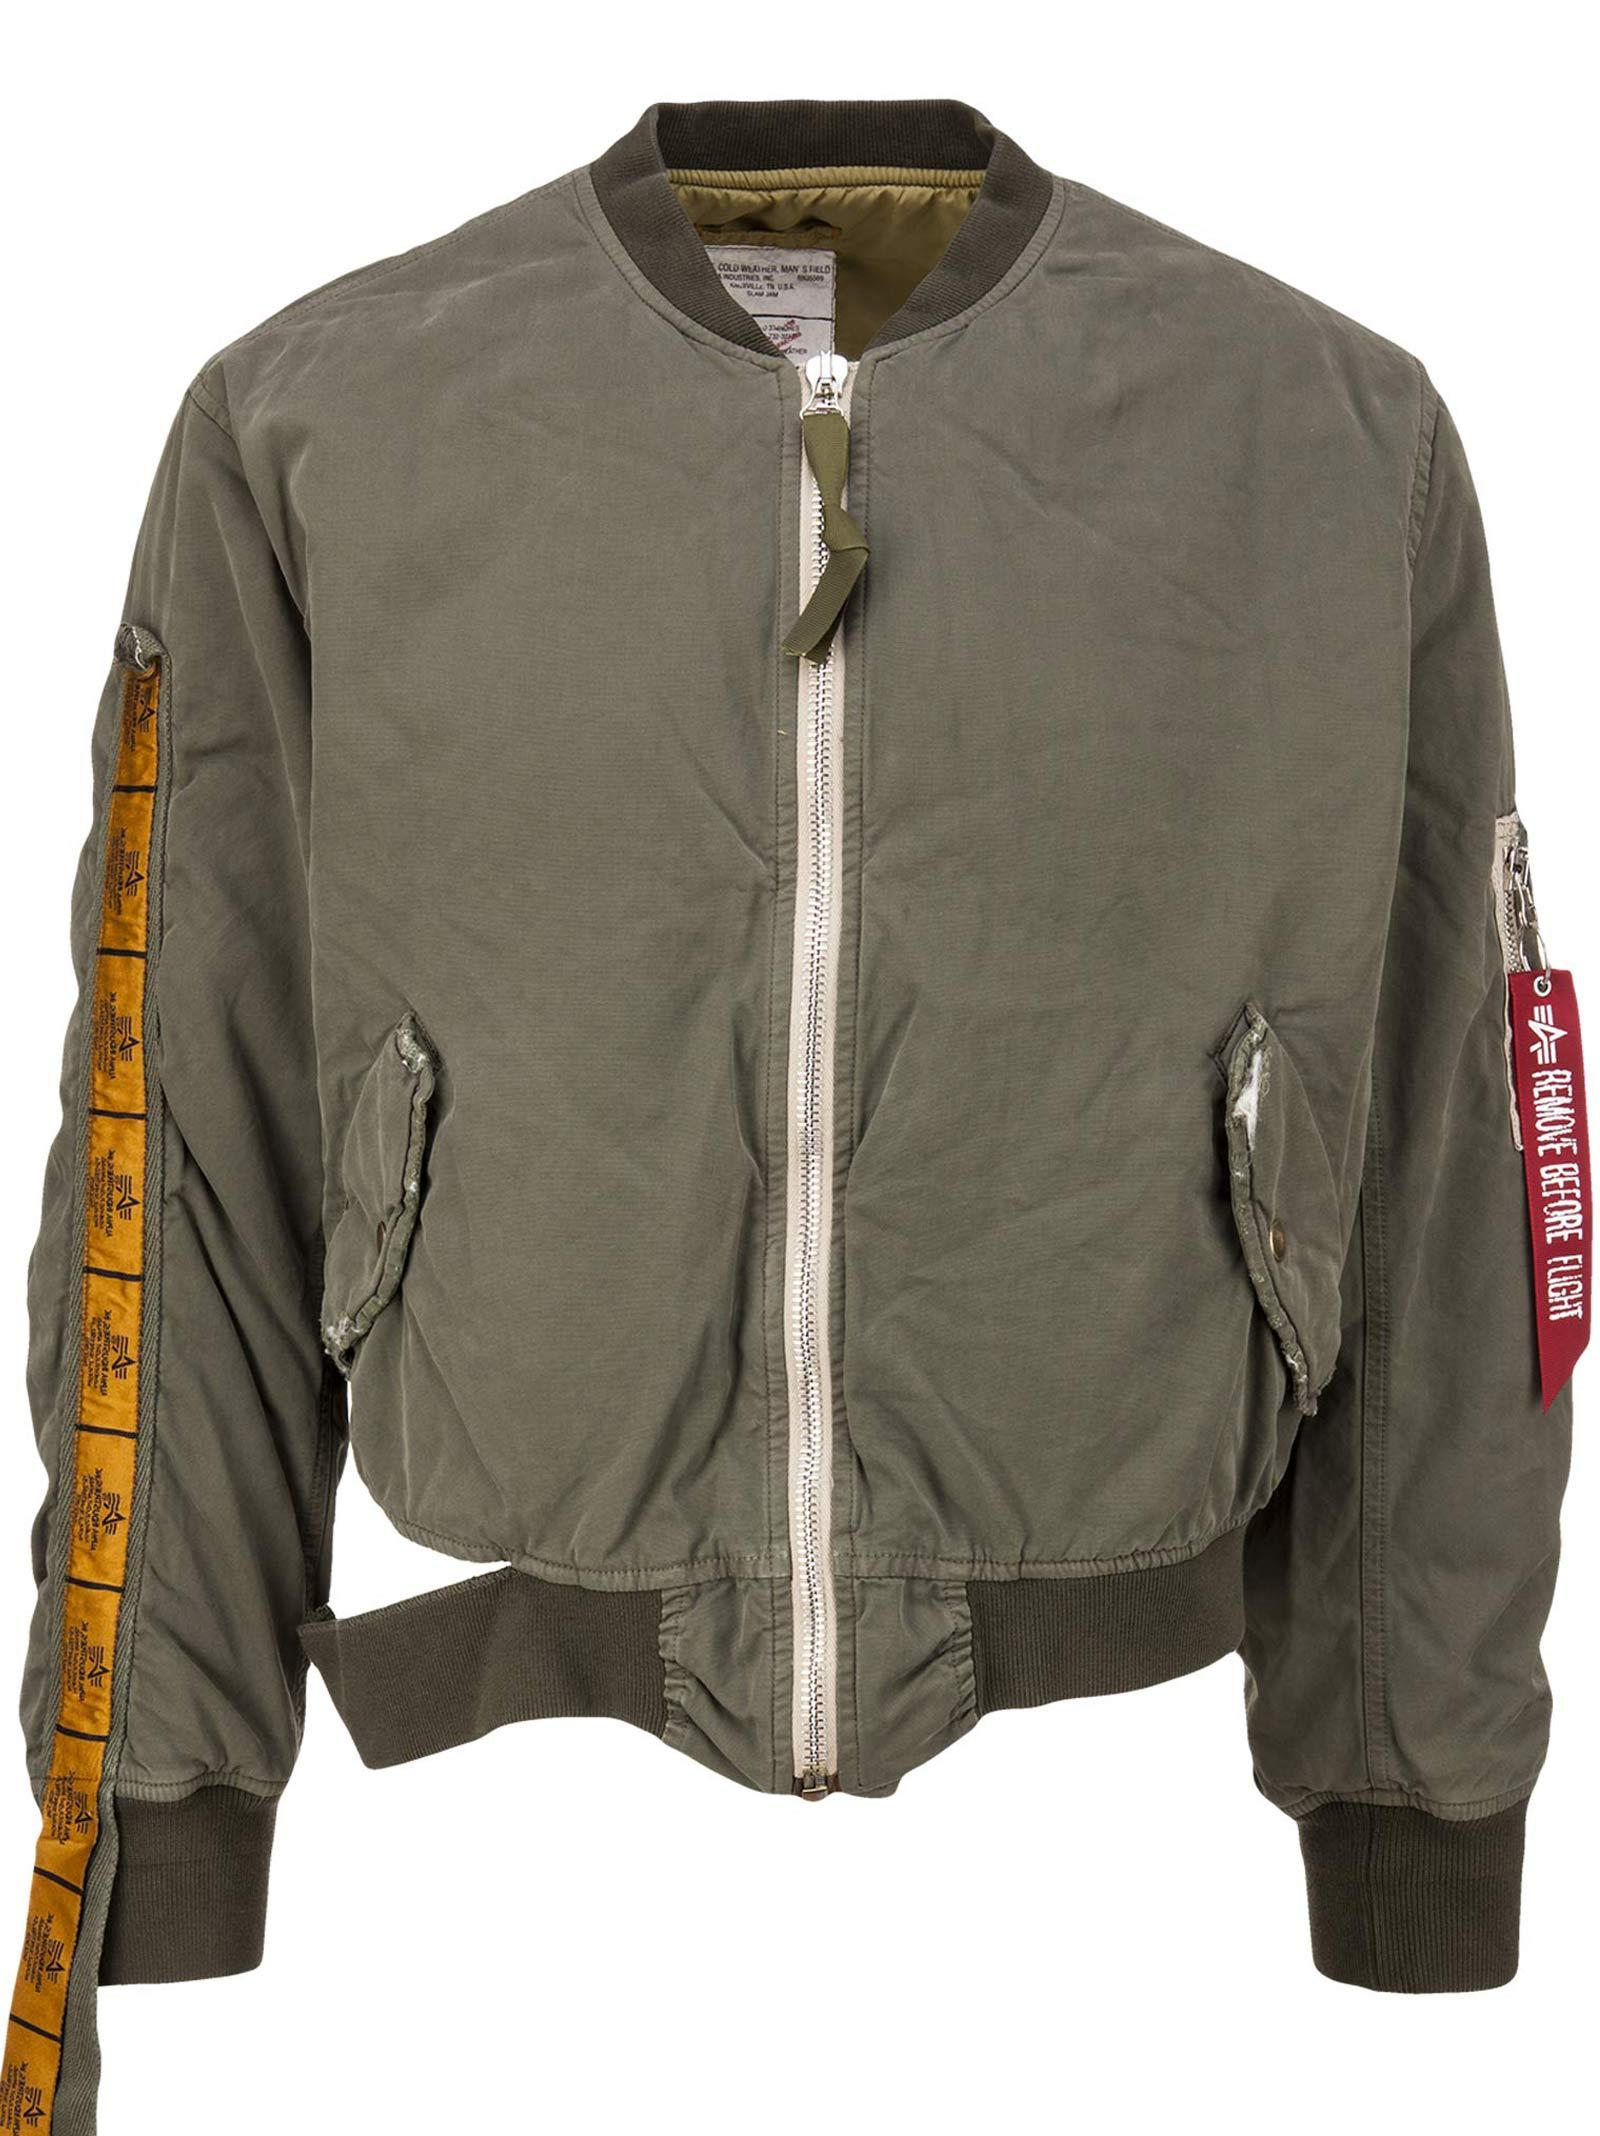 6bfb248f3 424 X Alpha X Slam Jam Jacket in Ma-1 Special Sleeve